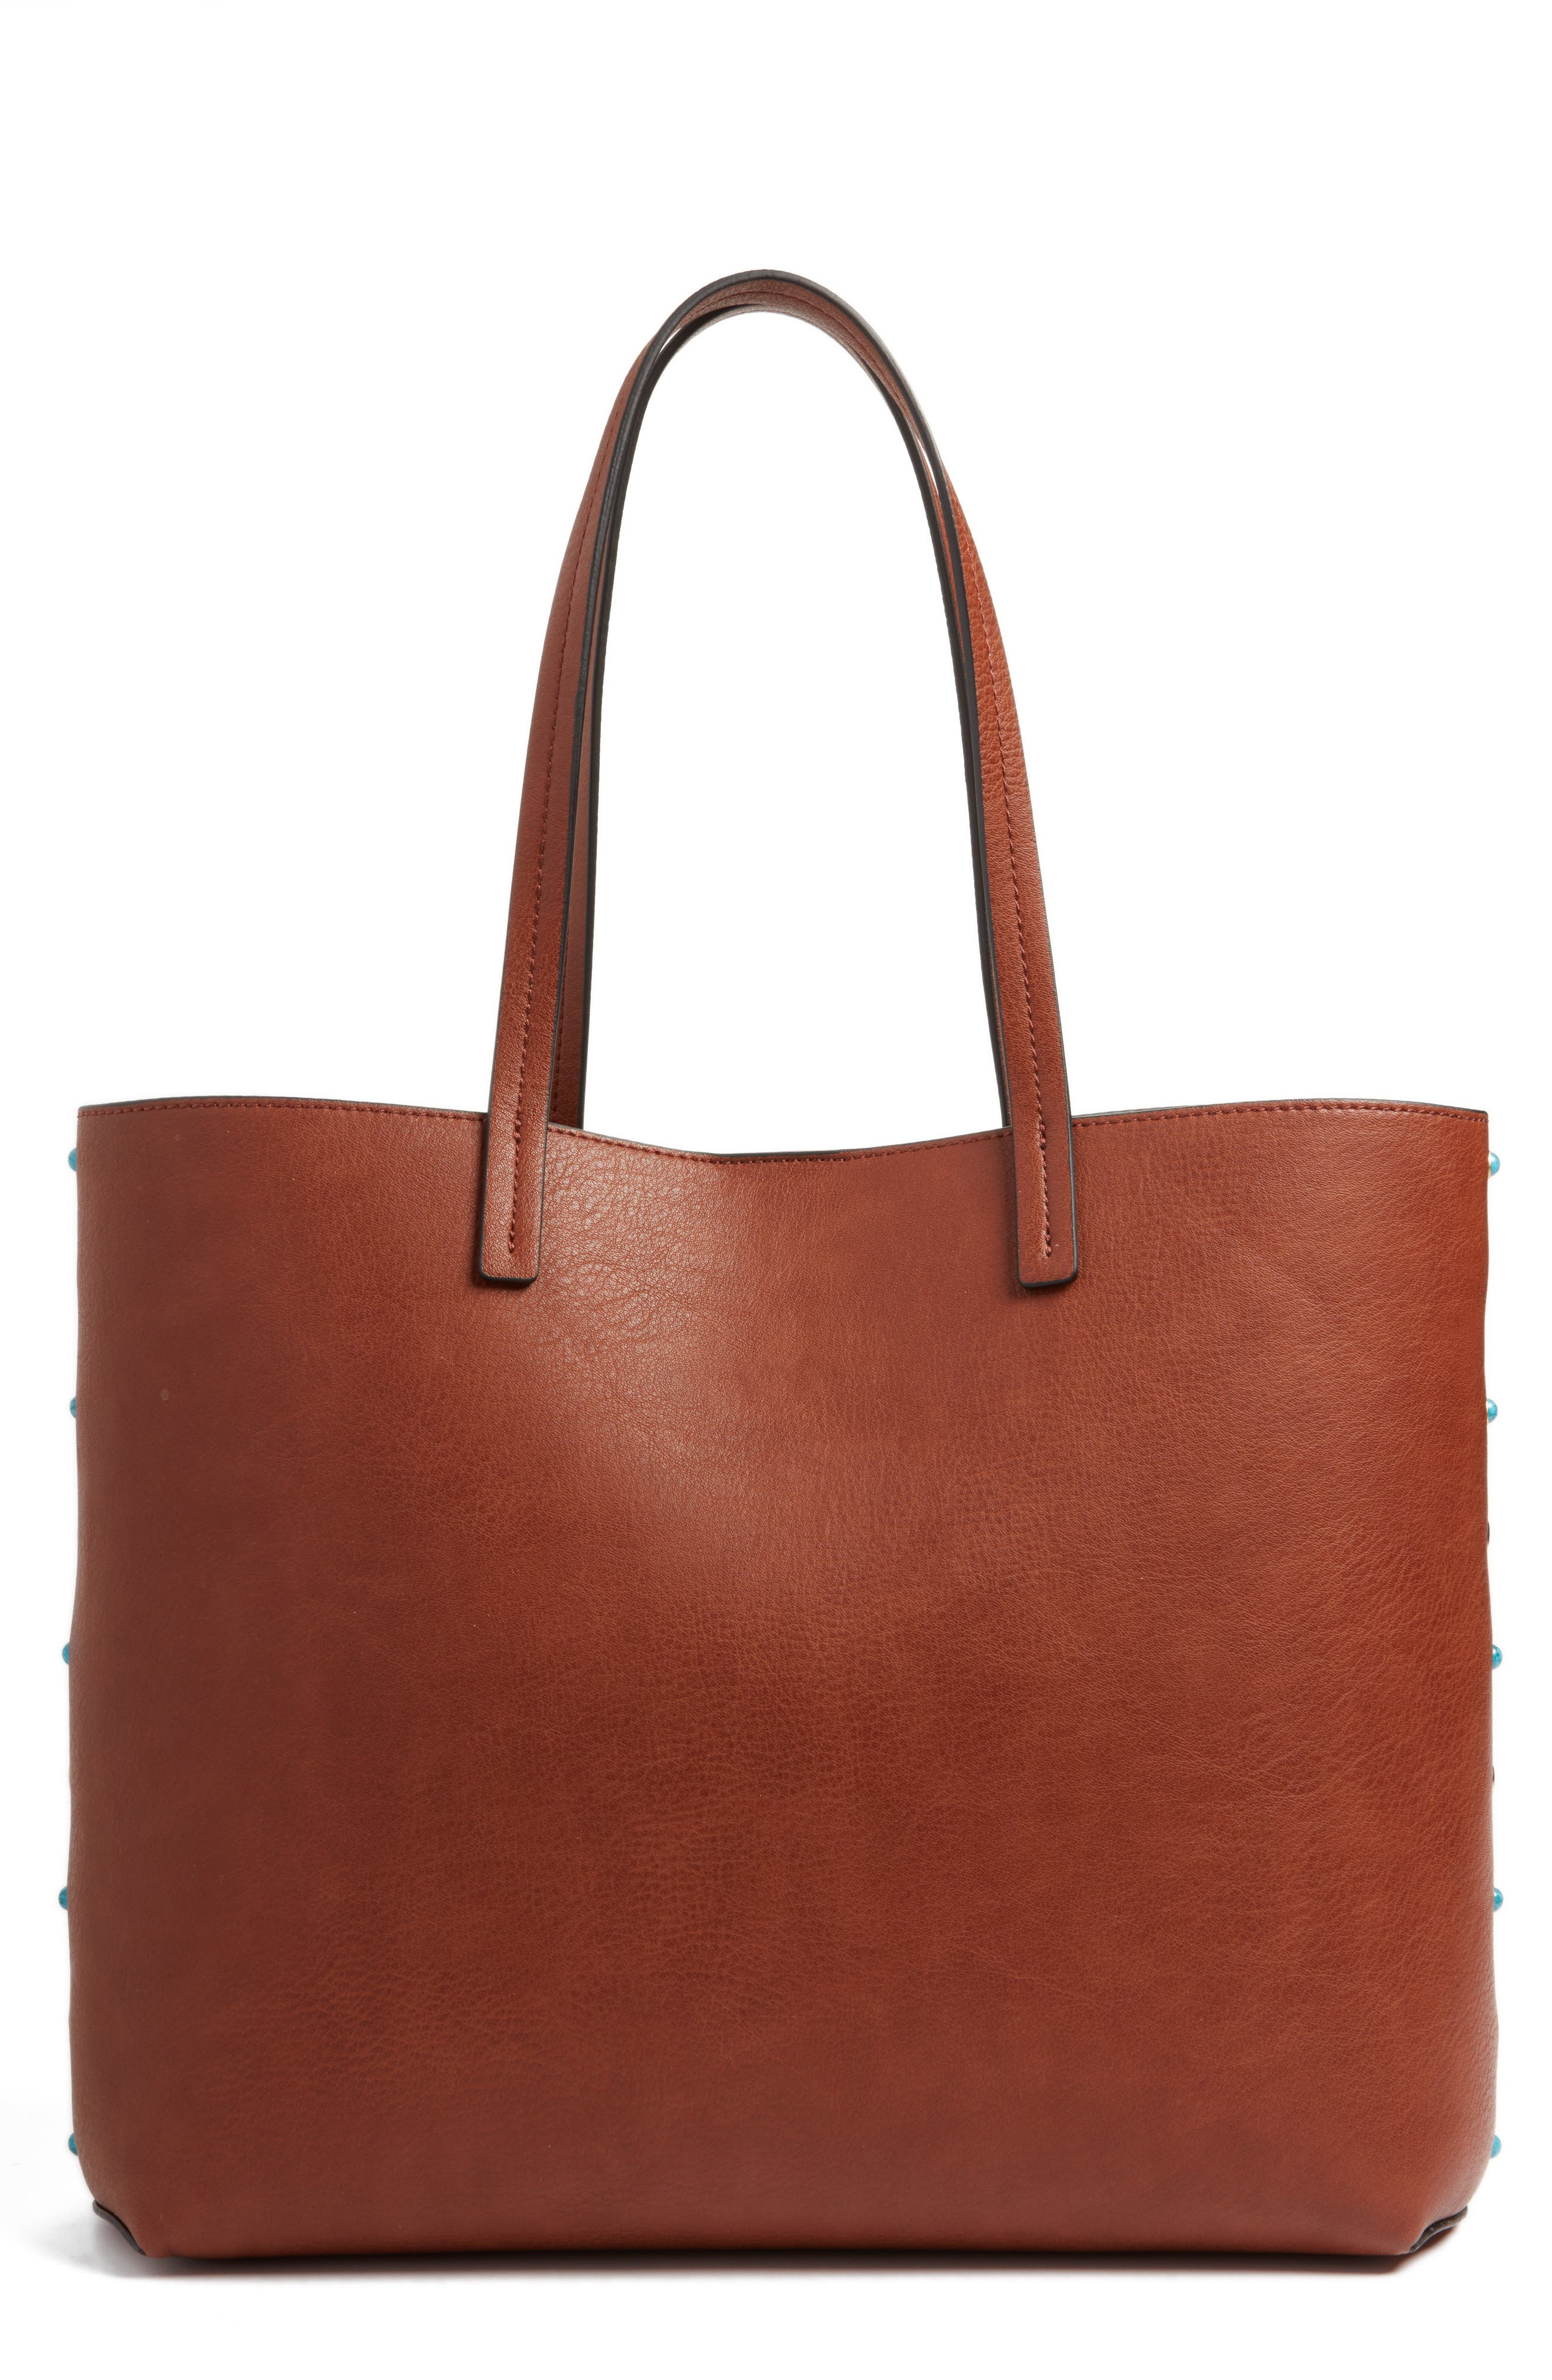 Main Image - Chelsea28 Olivia Faux Leather Tote